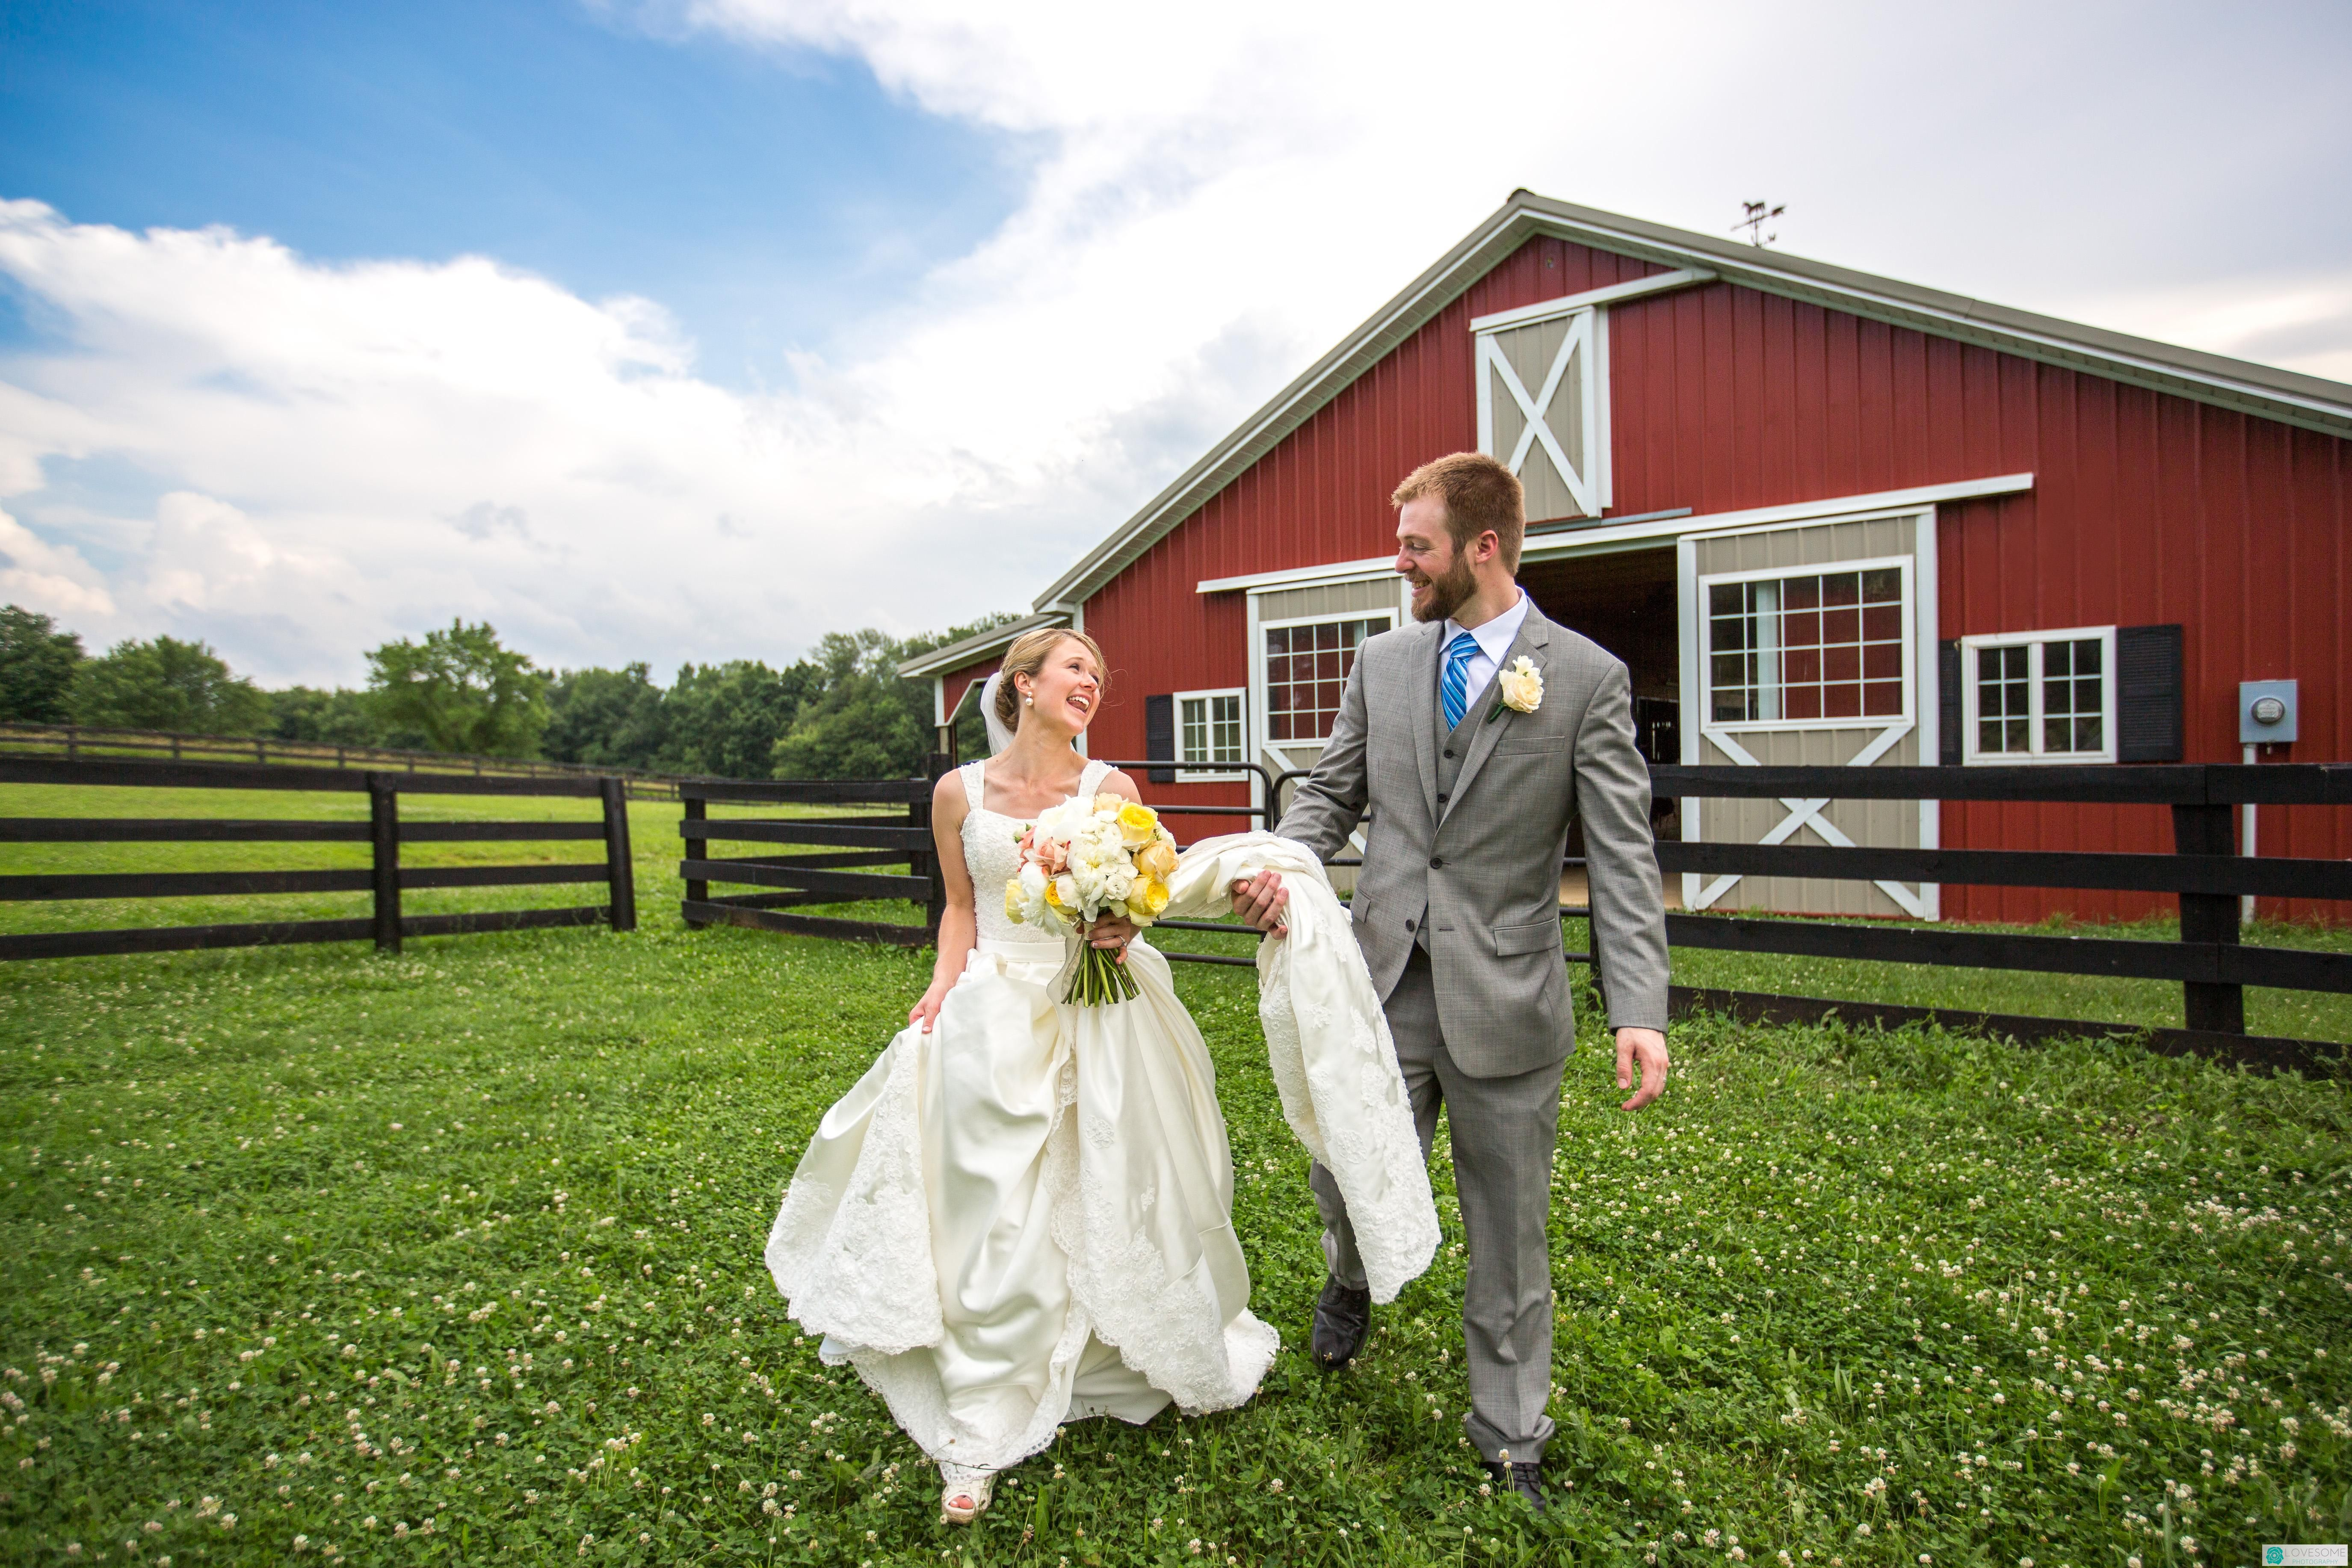 Dresses for a country wedding  Fairytale Wedding Dress  Country Wedding Dresses Decor and